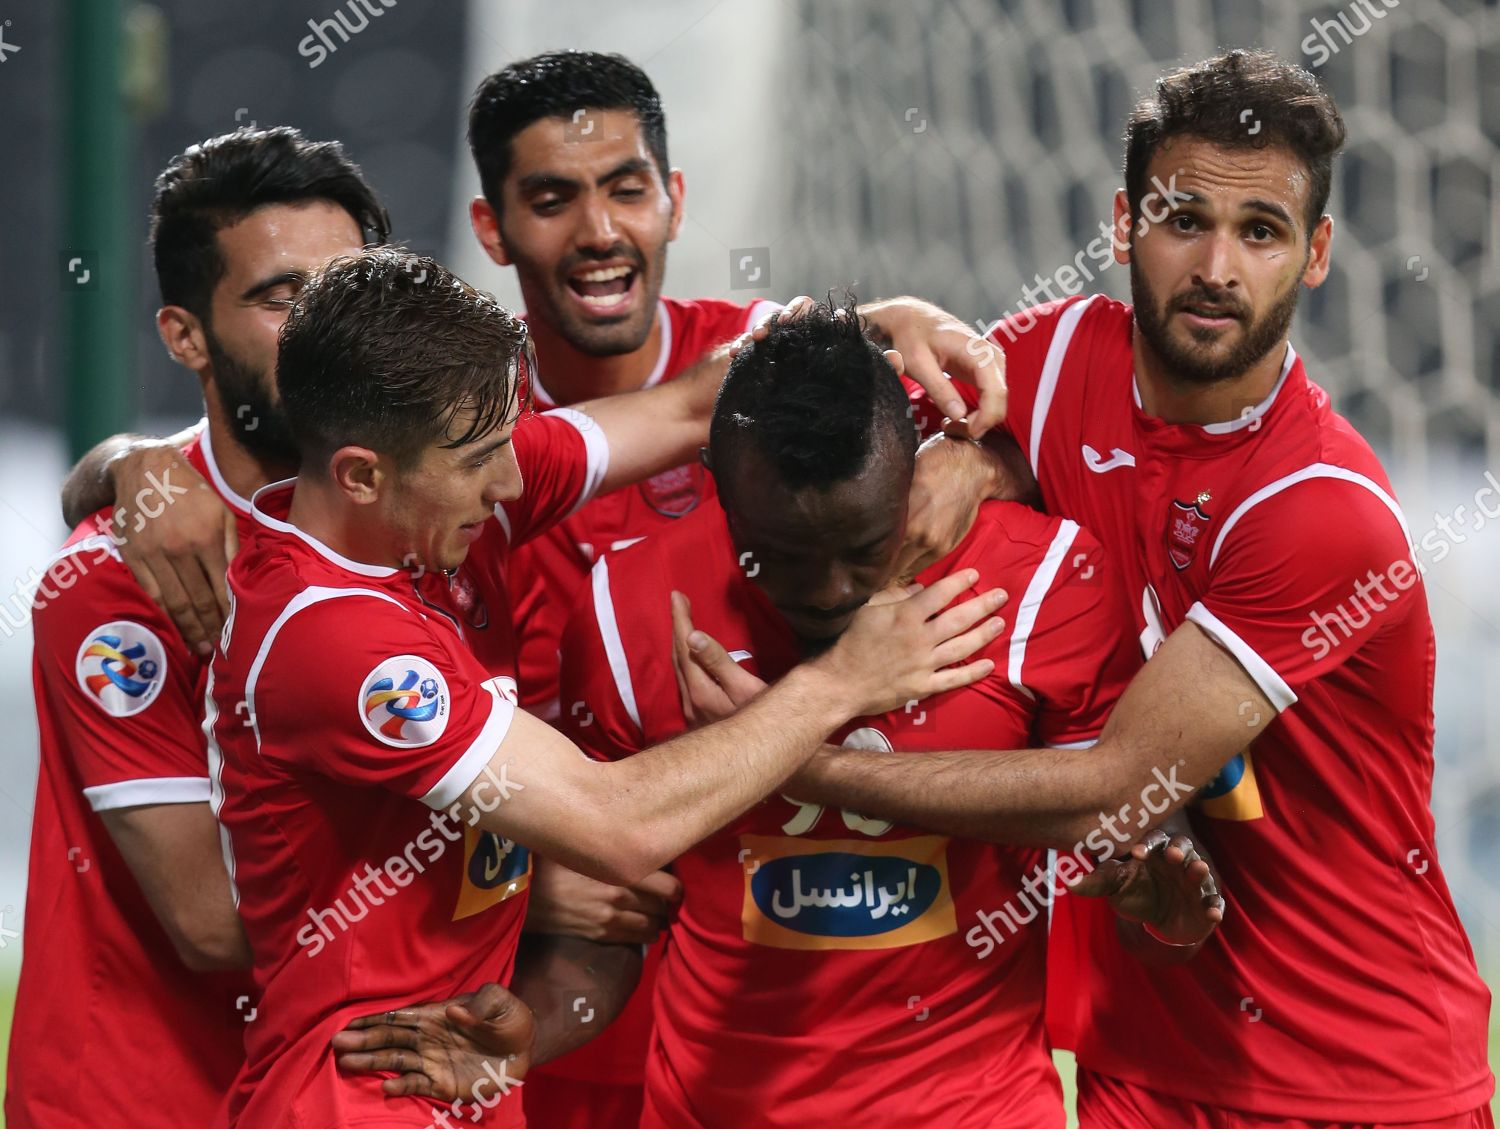 Players Persepolis Irans Club Celebrate After Scoring Editorial Stock Photo Stock Image Shutterstock